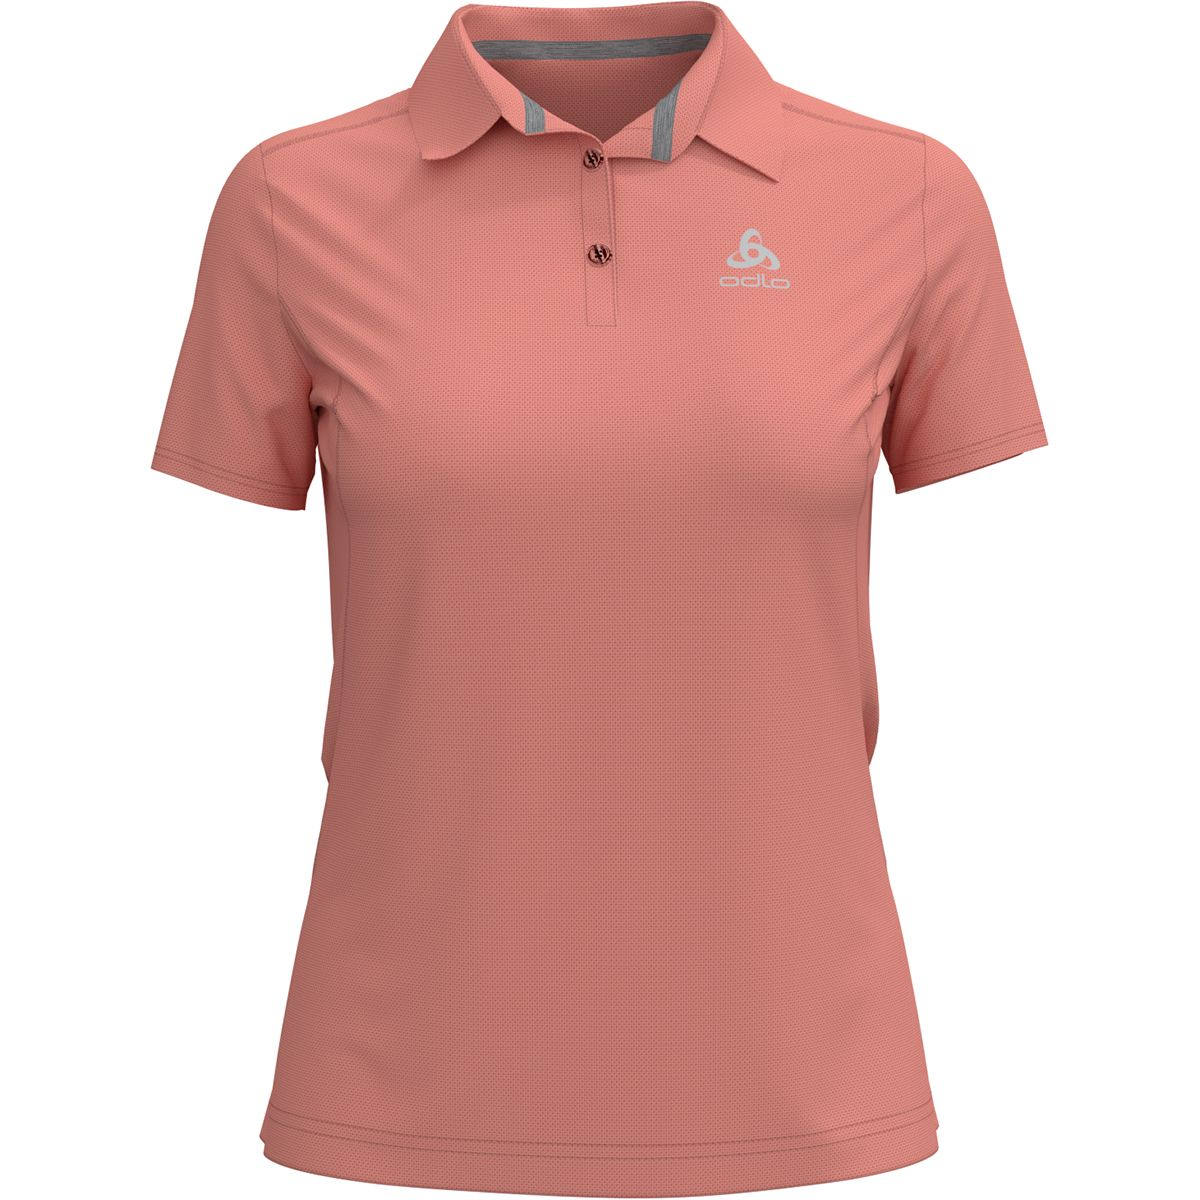 Odlo Damen Polo Shirt S/s F-dry (Größe XL, Orange) | T-Shirts Funktion > Damen